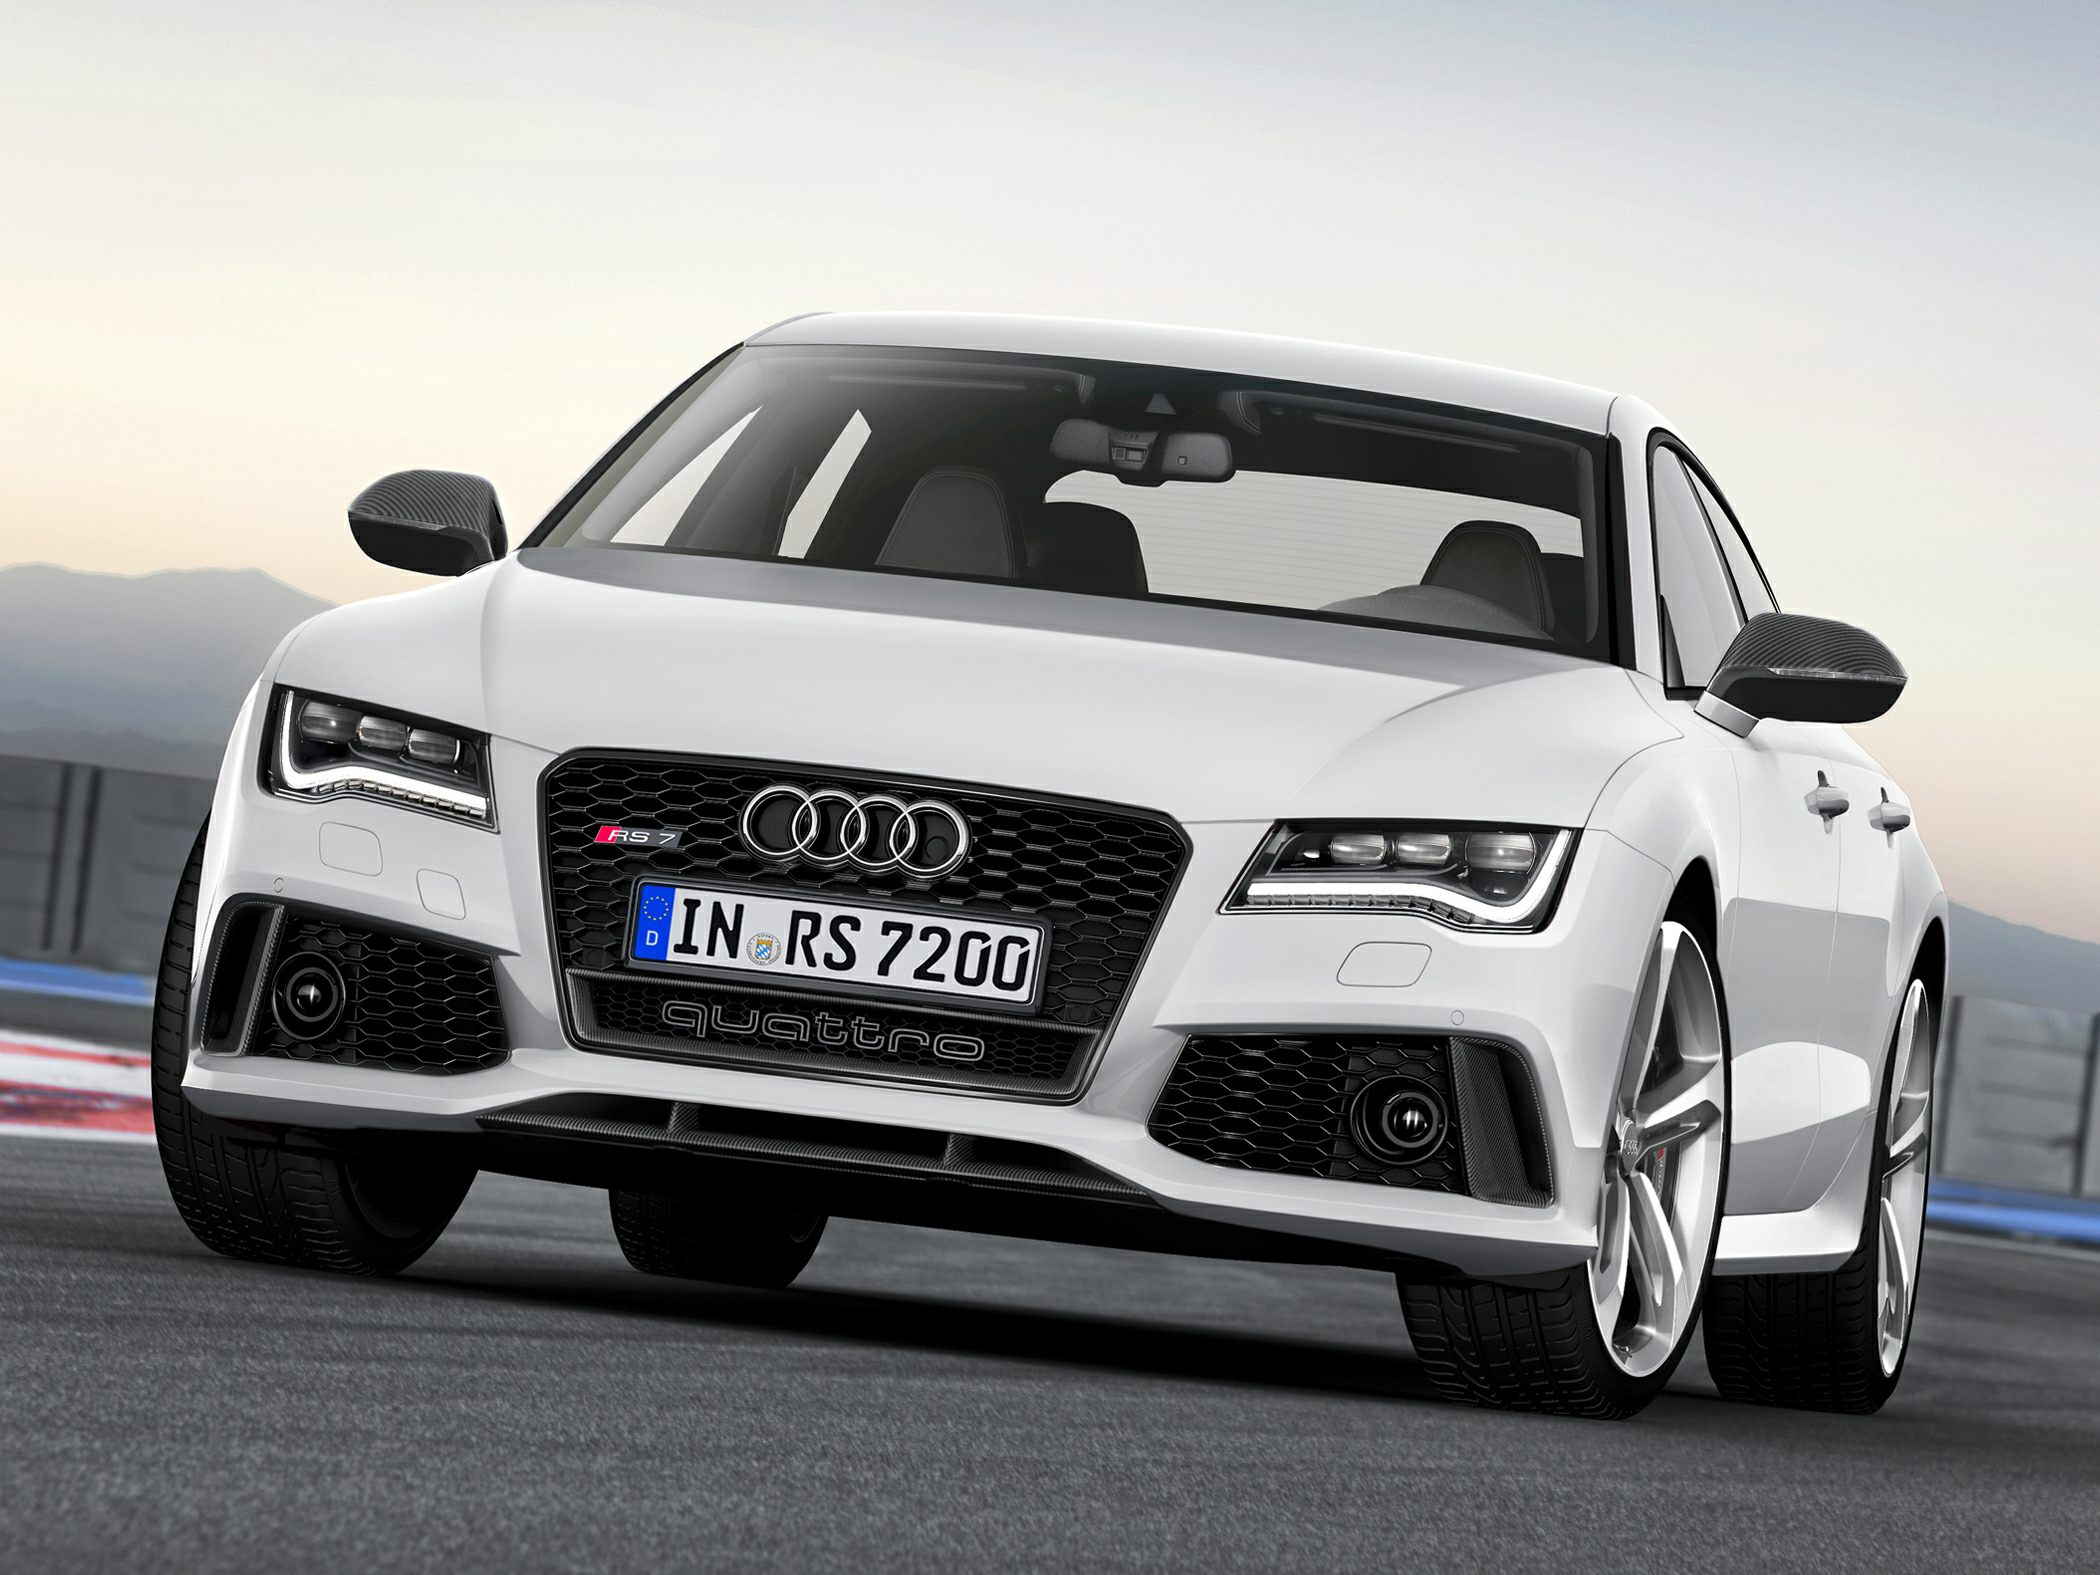 2014 Audi RS 7 Glam